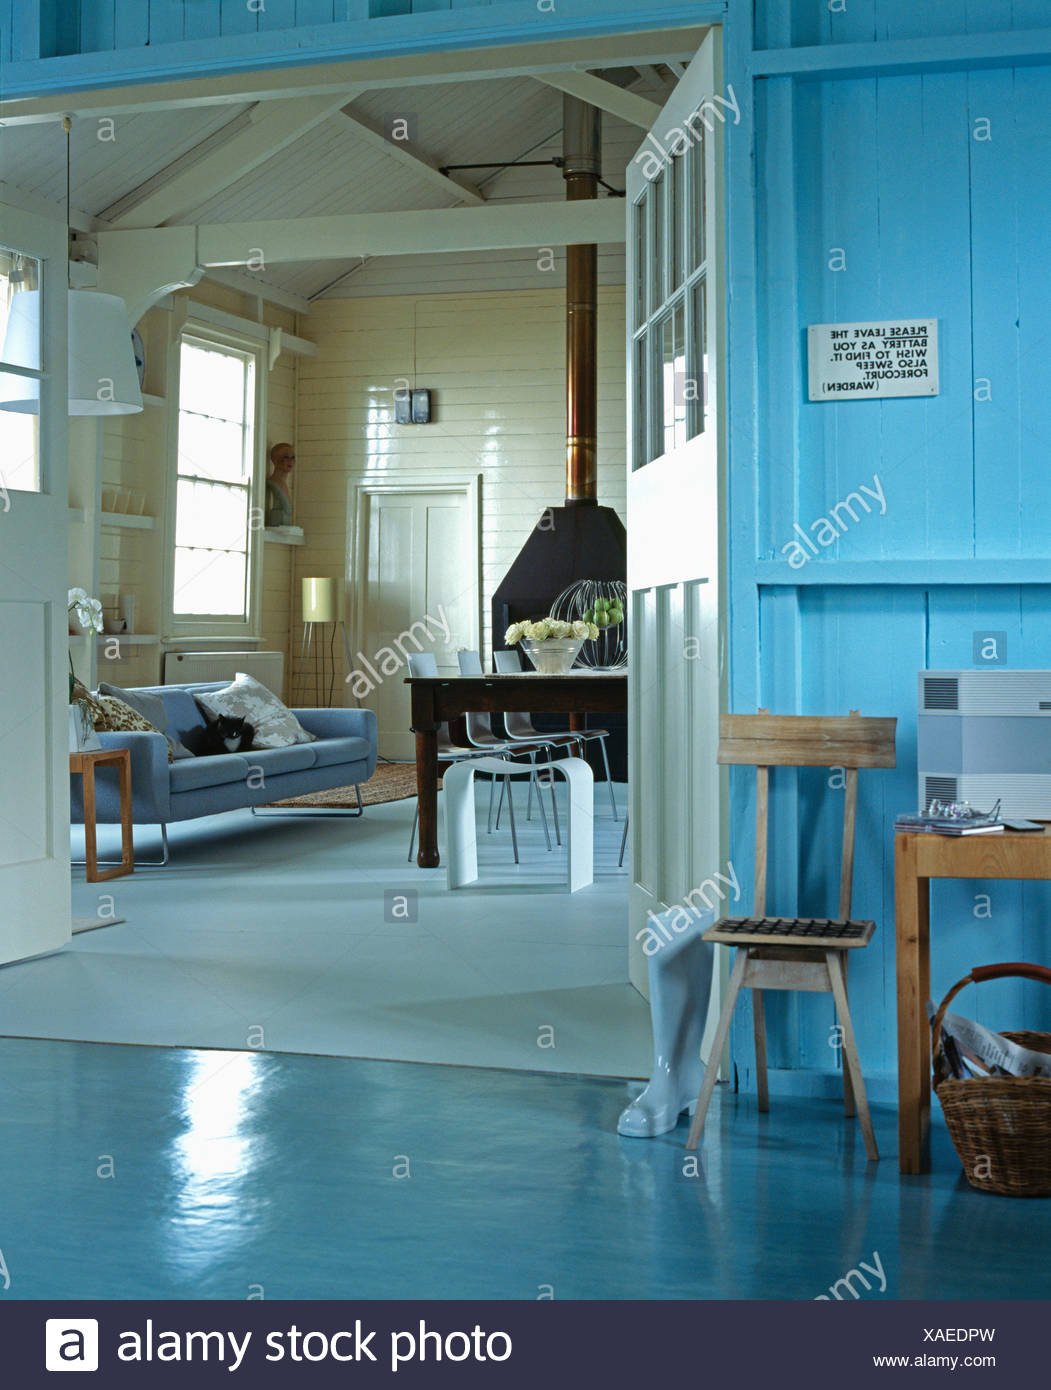 Blue Painted Cottage Hall With Turquoise Vinyl Floor And Panelled Walls View Of Living Dining Room Through Doorway